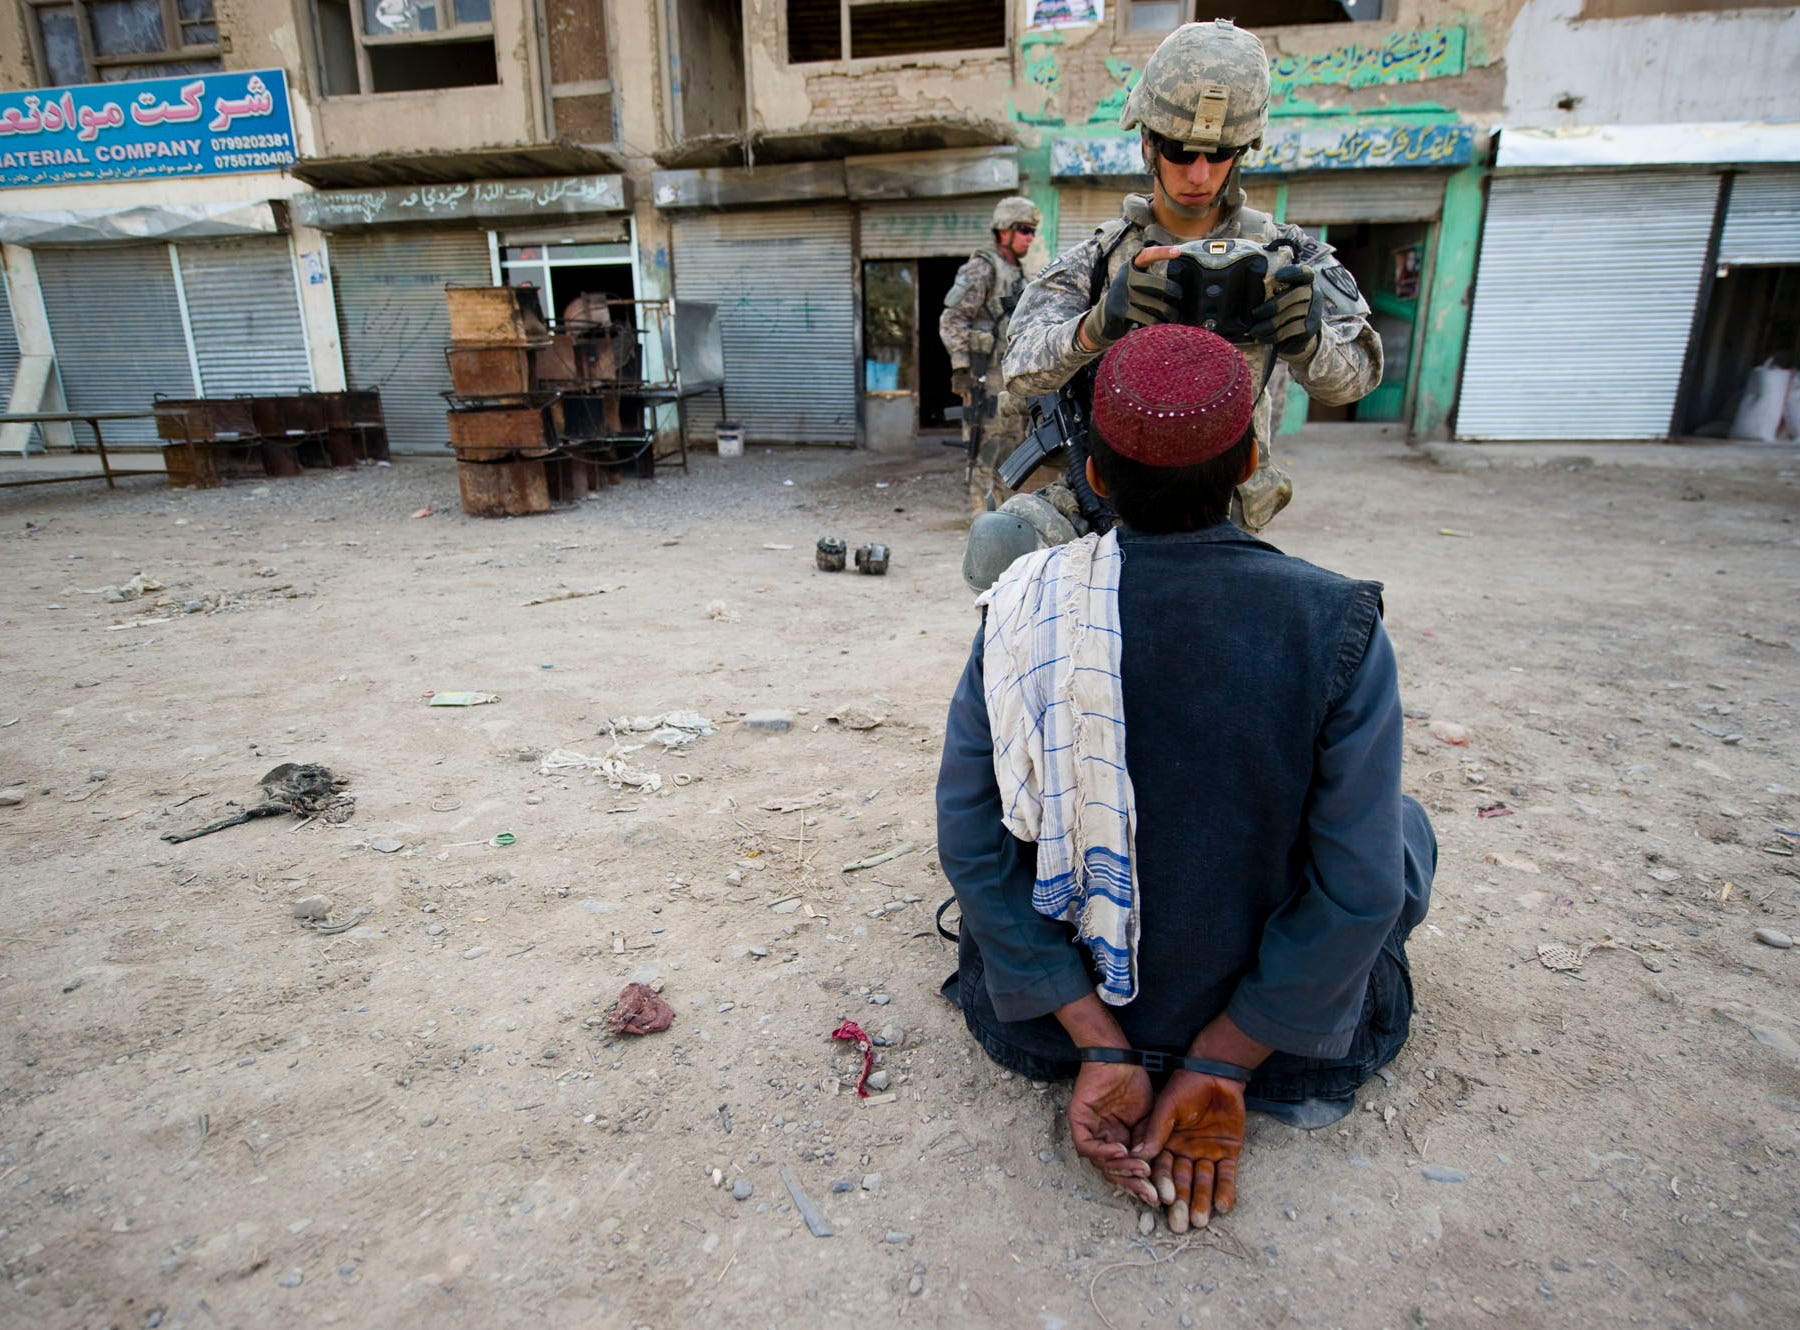 A member of the 615th Military Police Company processes an Afghan's information into a HIIDE  (Handheld Interagency Identity Detection Equipment) during a raid of a suspected weapons and IED stash at a building in downtown Gardez in Paktia Province, Afghanistan, on Friday morning, September 17, 2010. No weapons or bomb-making materials were found and all the people detained were later released.